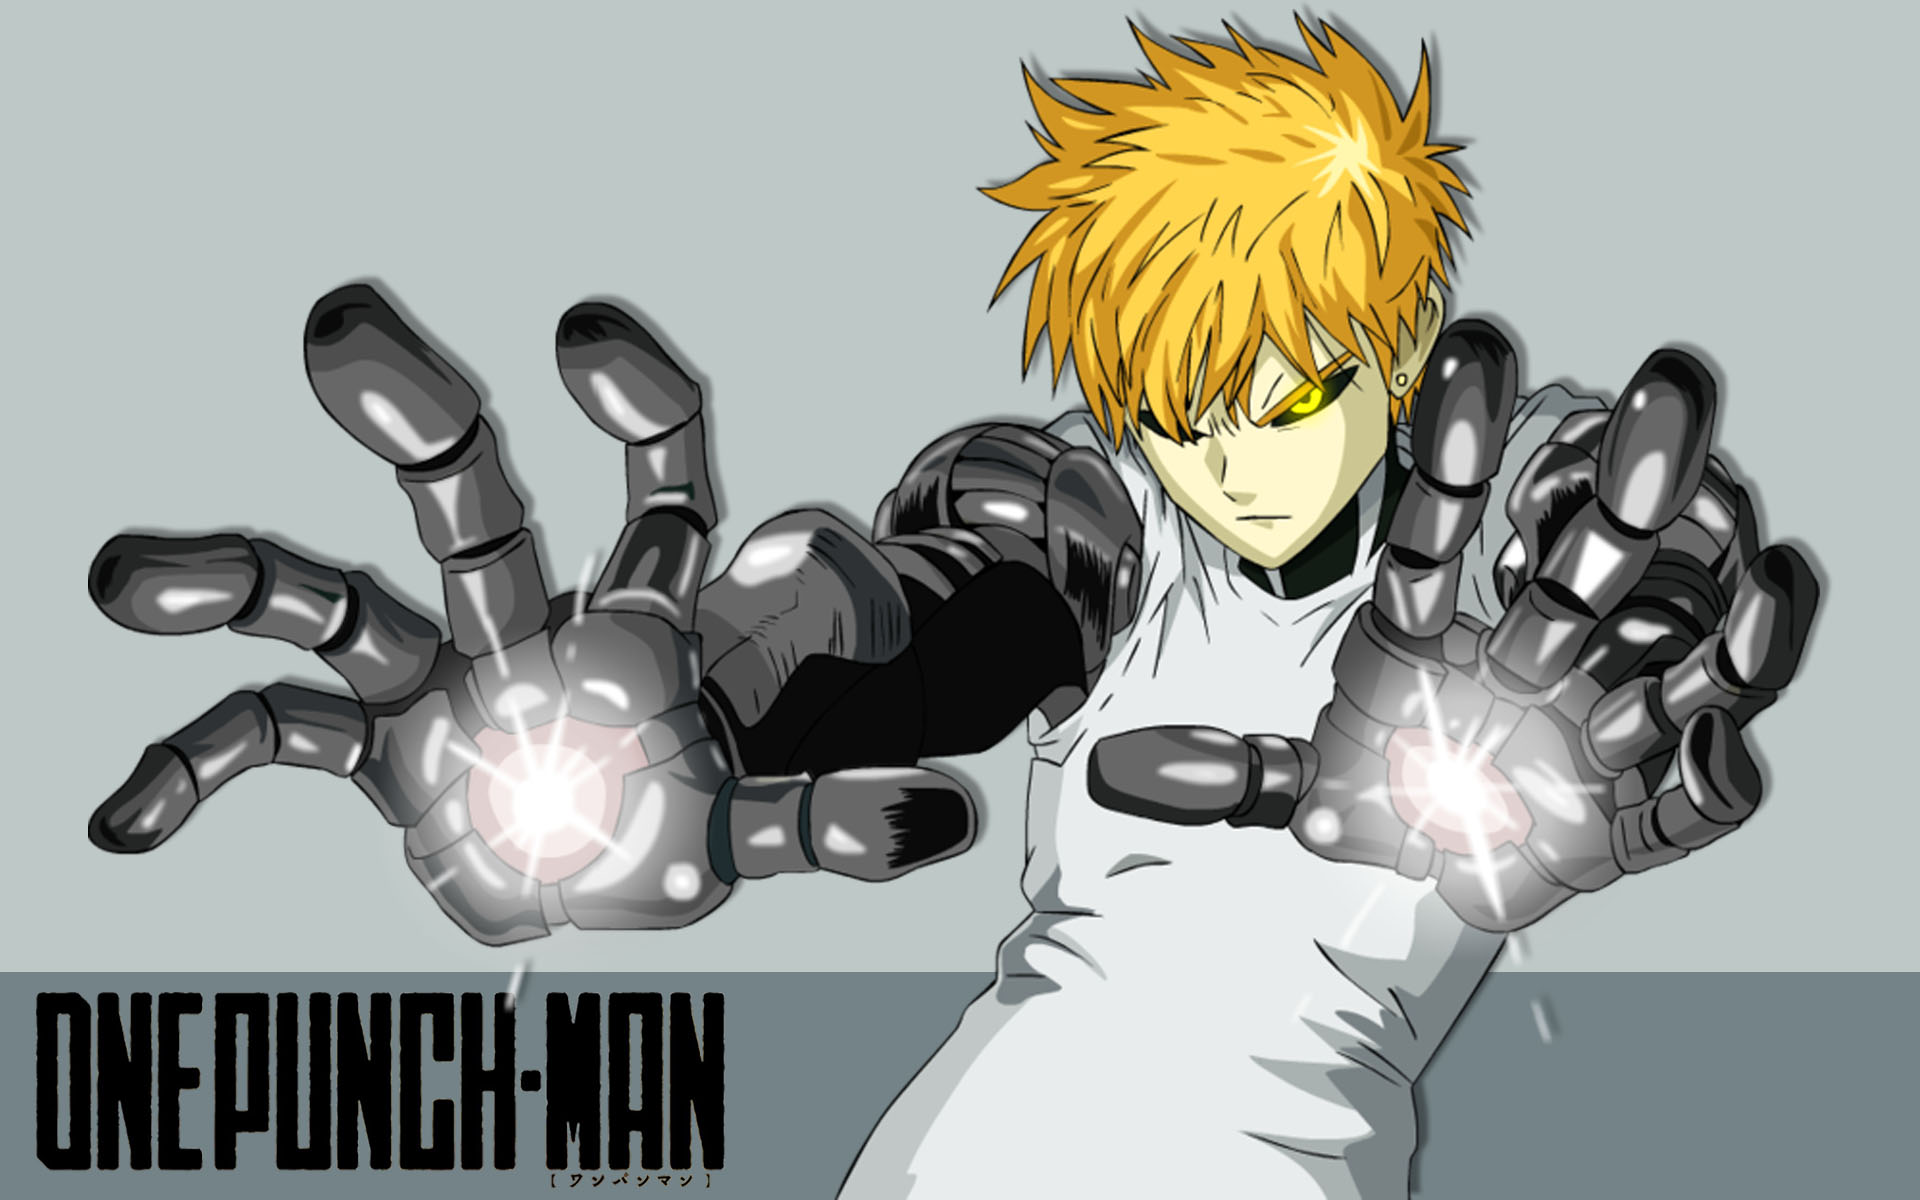 E Punch Man Wallpaper Hd HD Wallpaper